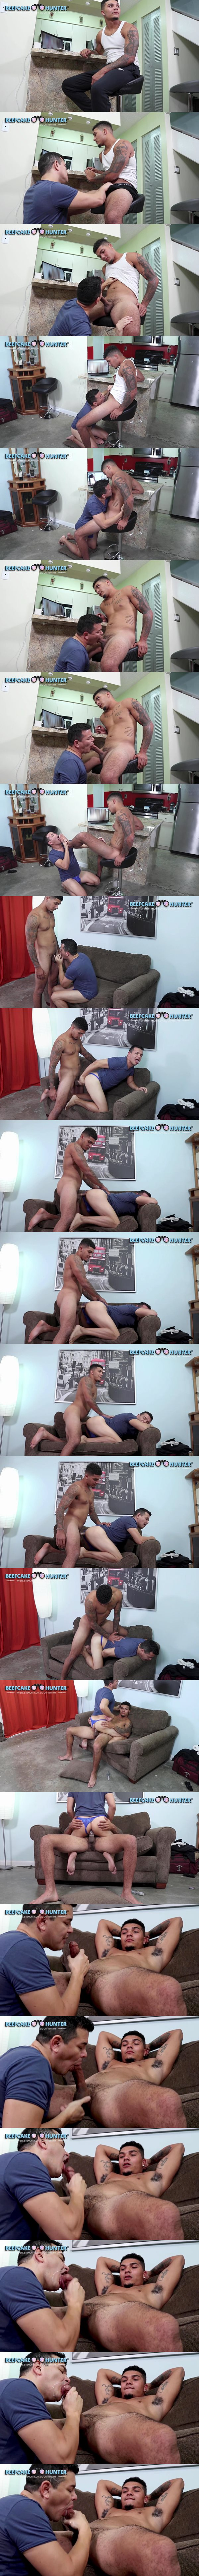 Masculine straight beefcake, construction worker Kameroon fucks Victor in doggy and cowboy style before Victor jerks Kameroon off in Kameroon Magic Ride at Beefcakehunter 01